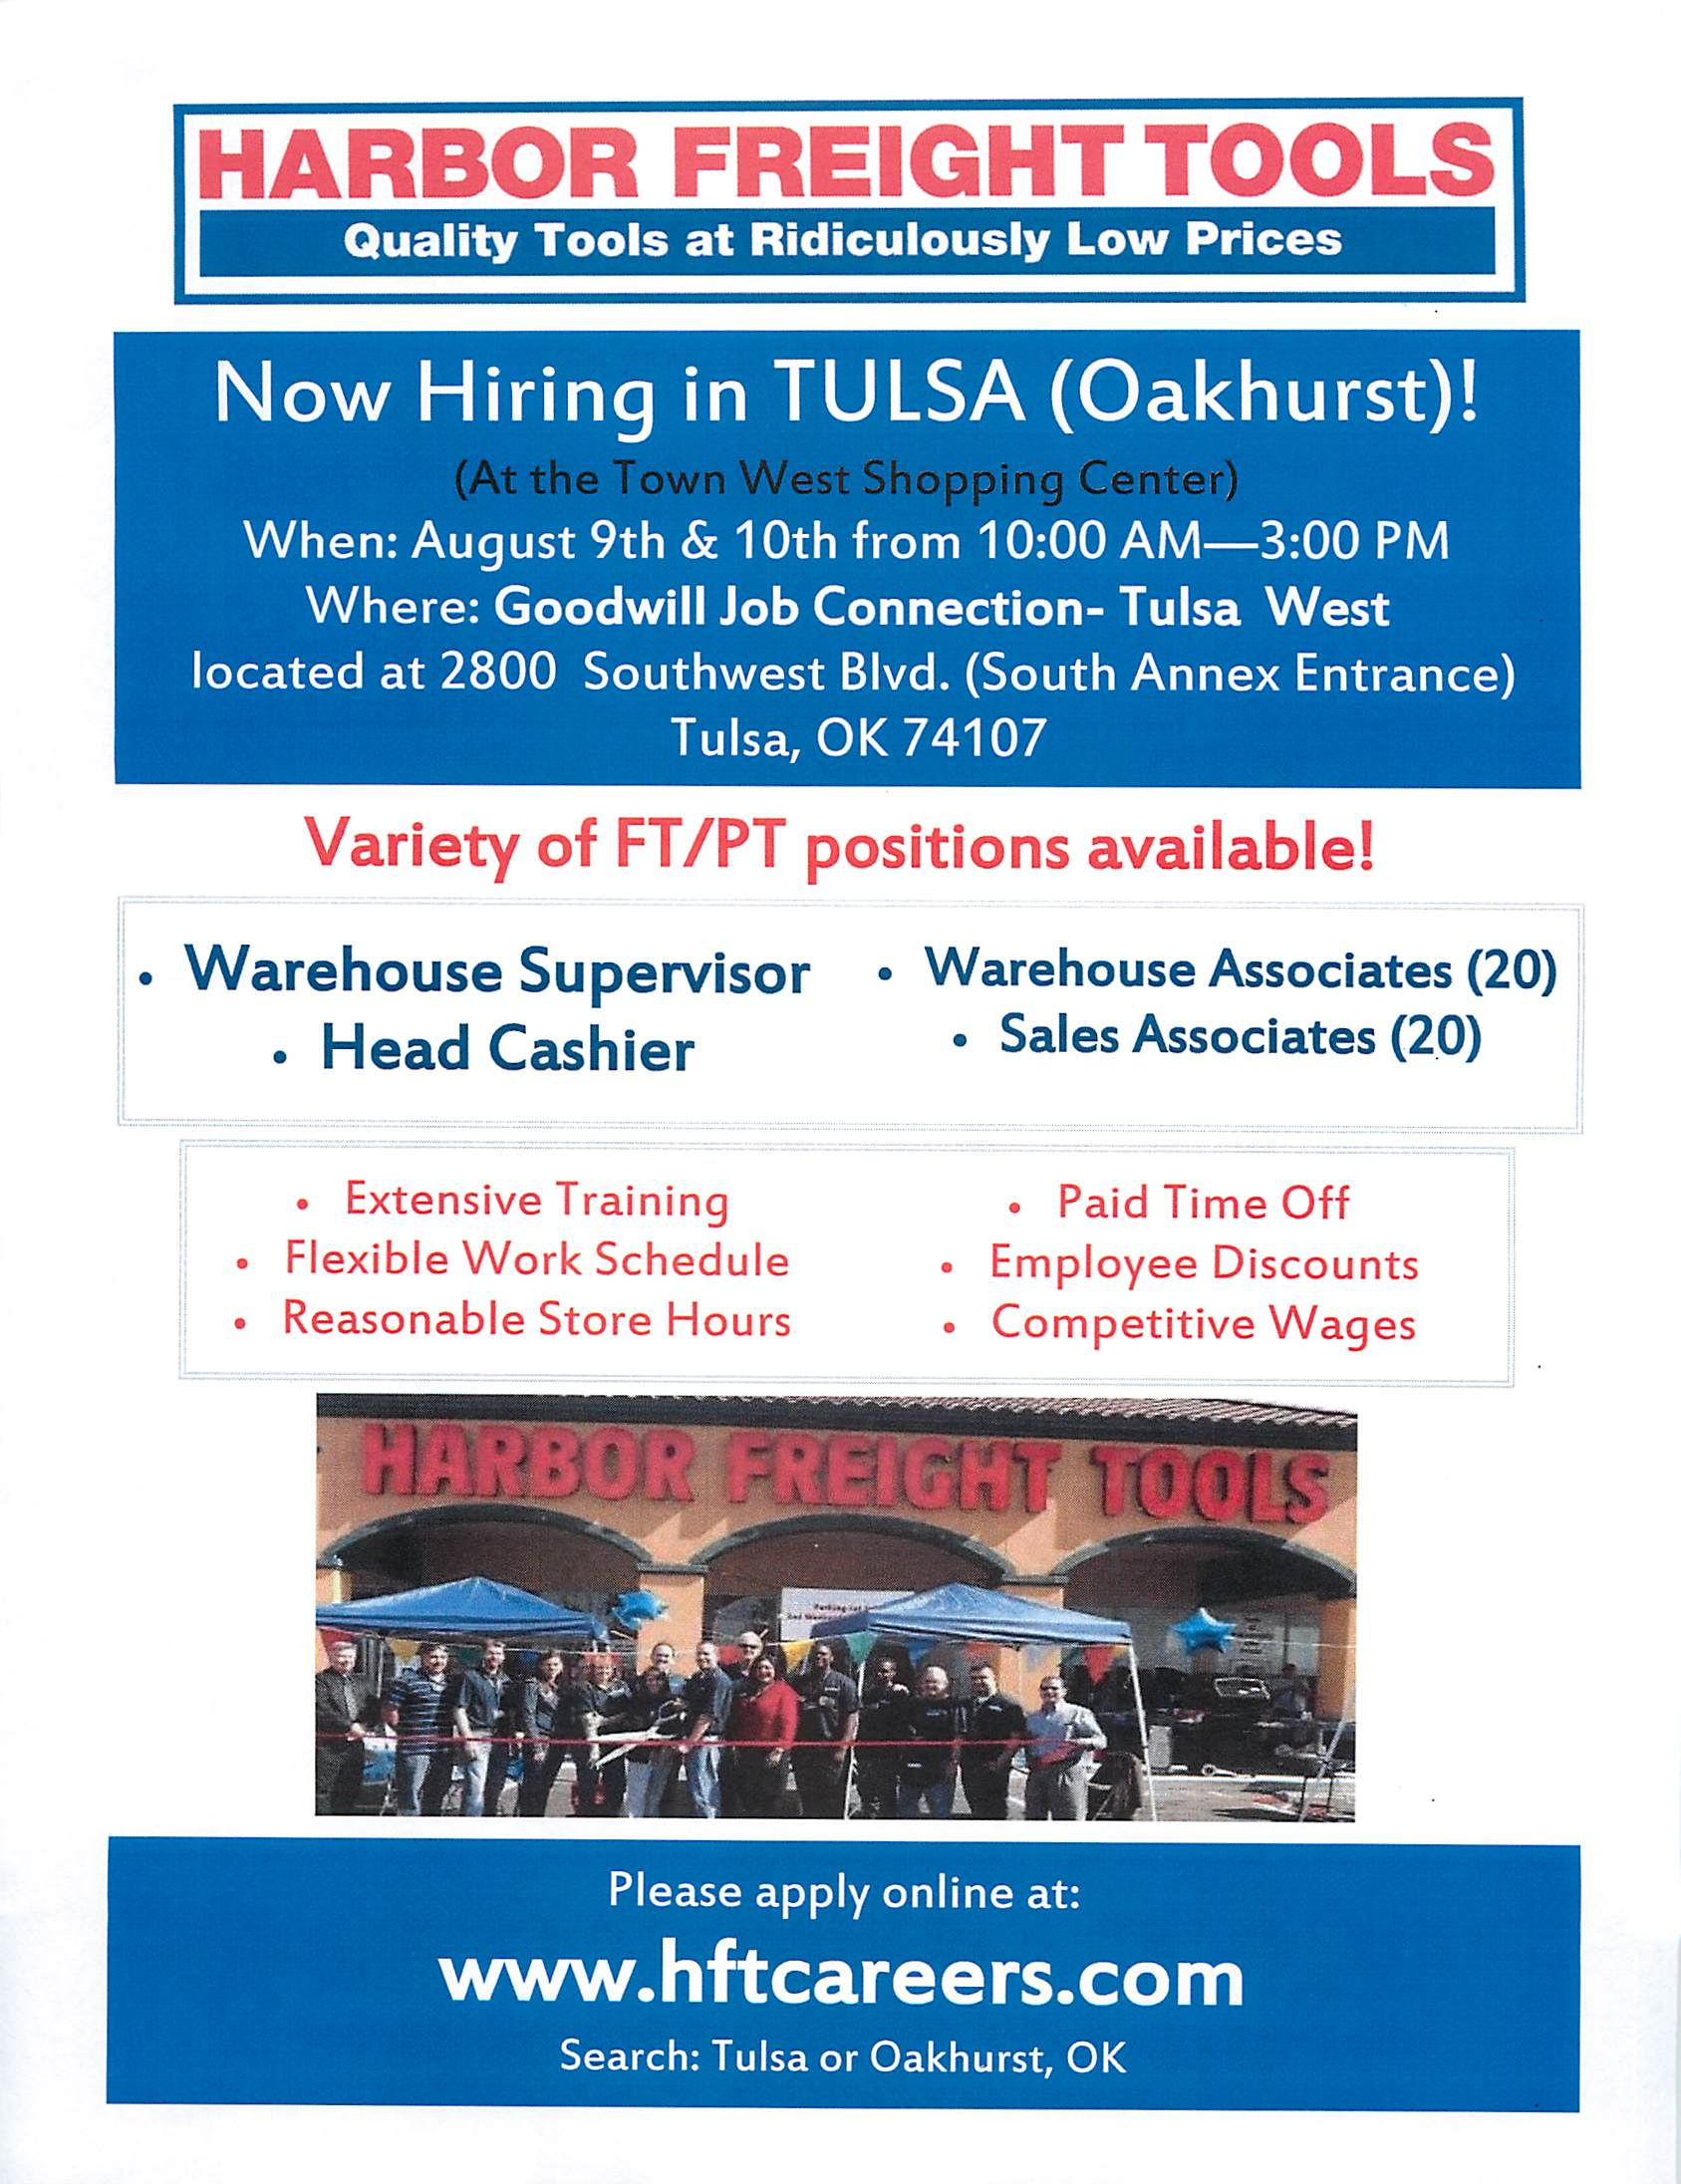 Hiring Event For Harbor Freight Tools 8 9 8 10 News You Can Use